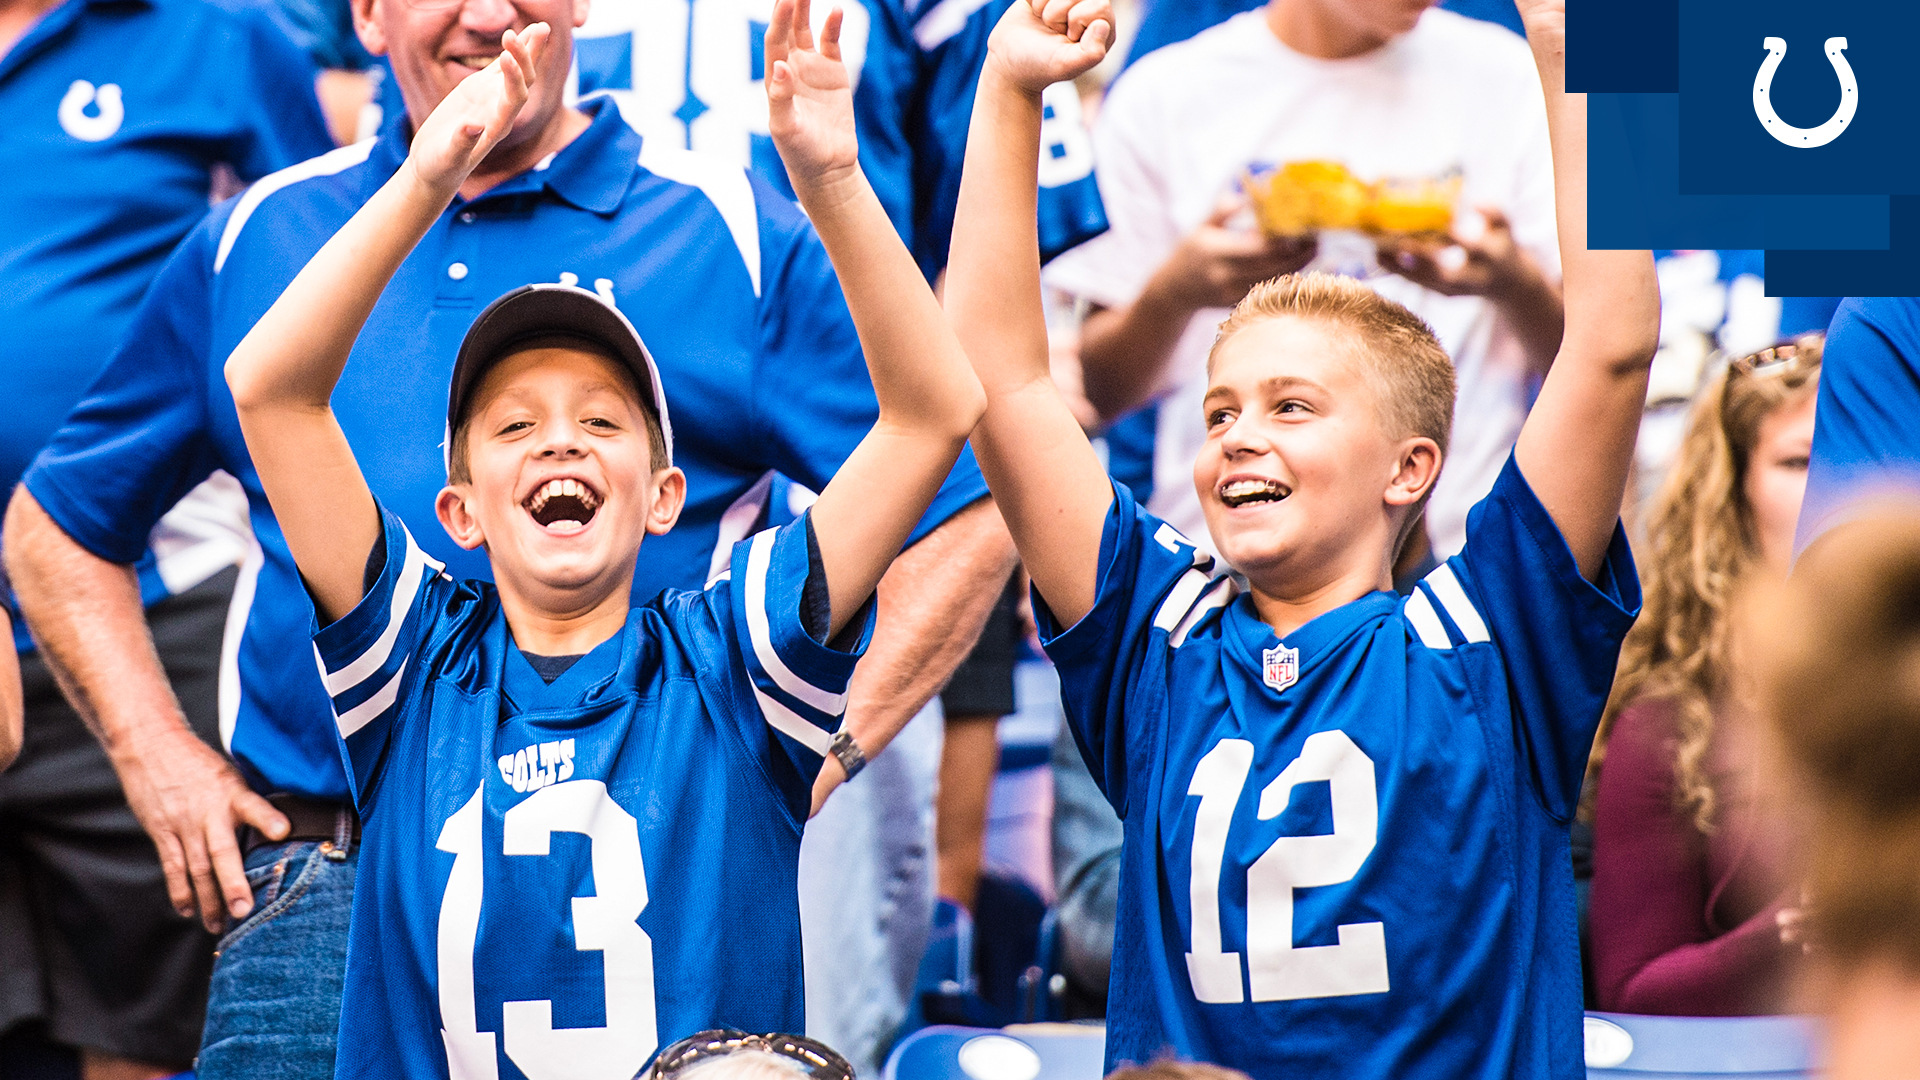 YOUTH GAMEDAY GIVEAWAY